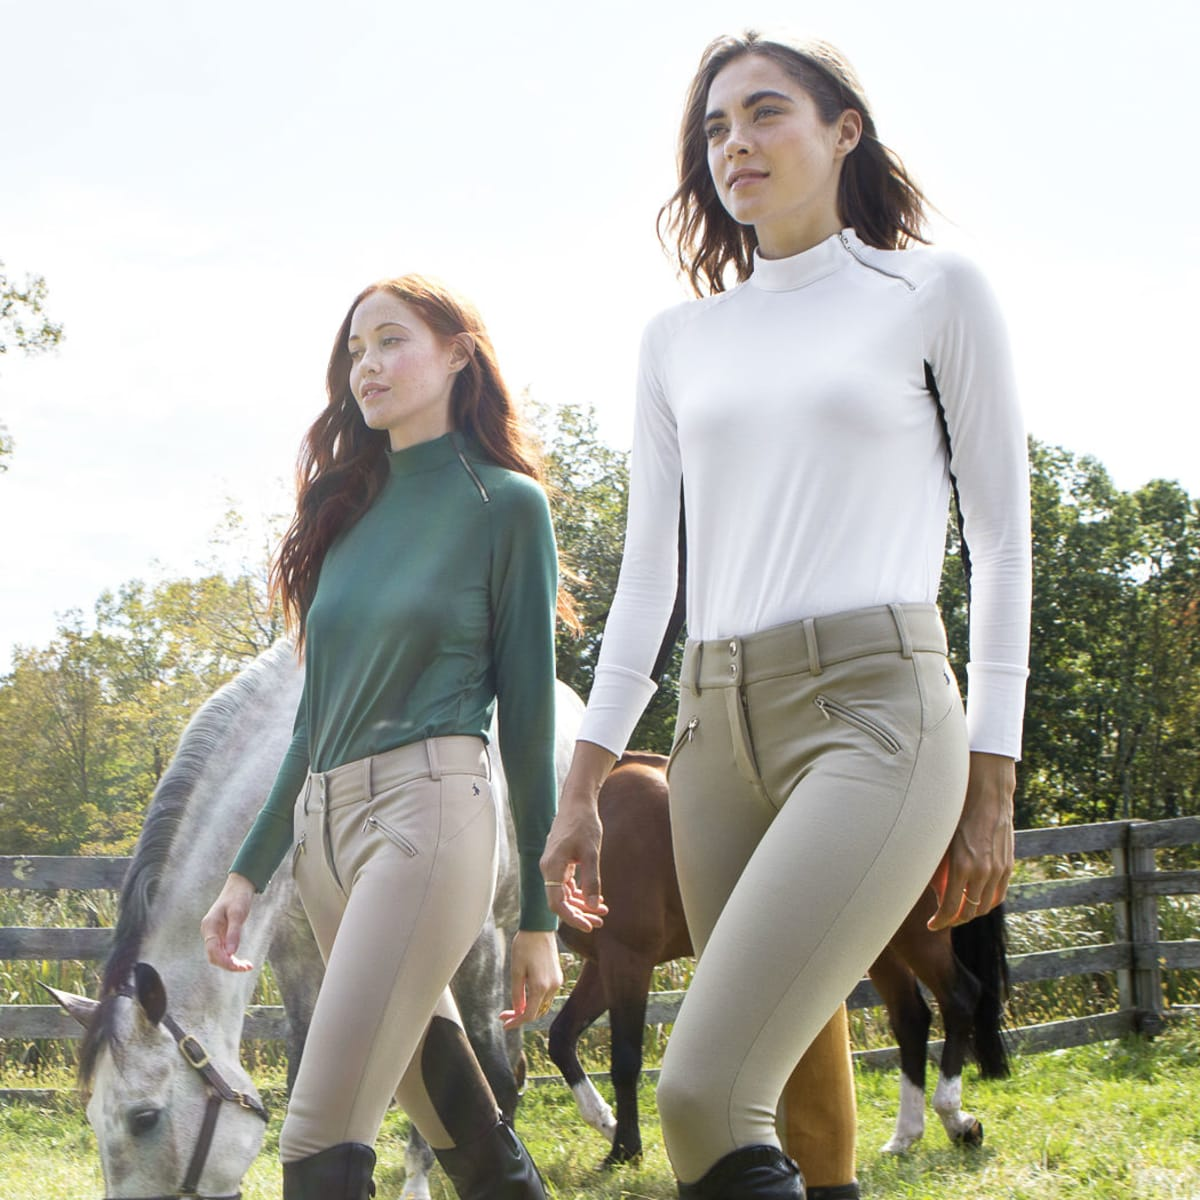 This Direct To Consumer Equestrian Apparel Brand Is For Horse Riders And Those Who Want To Dress Like One Fashionista